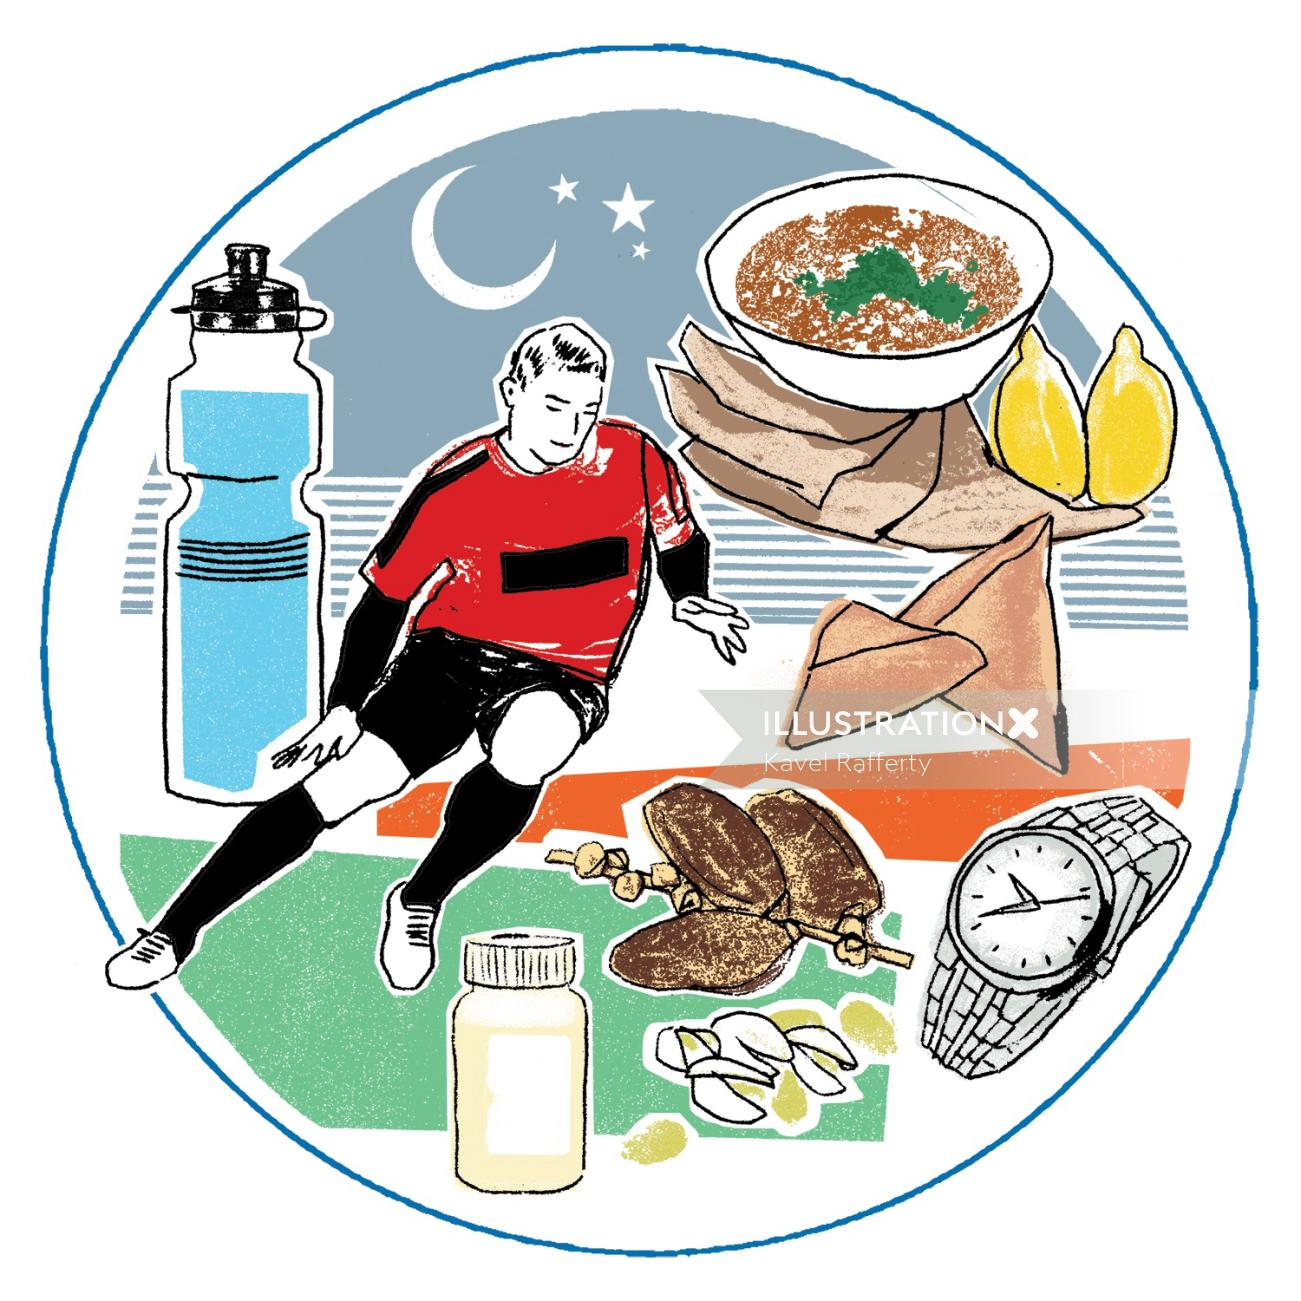 An Illustration Of Football Player & Food